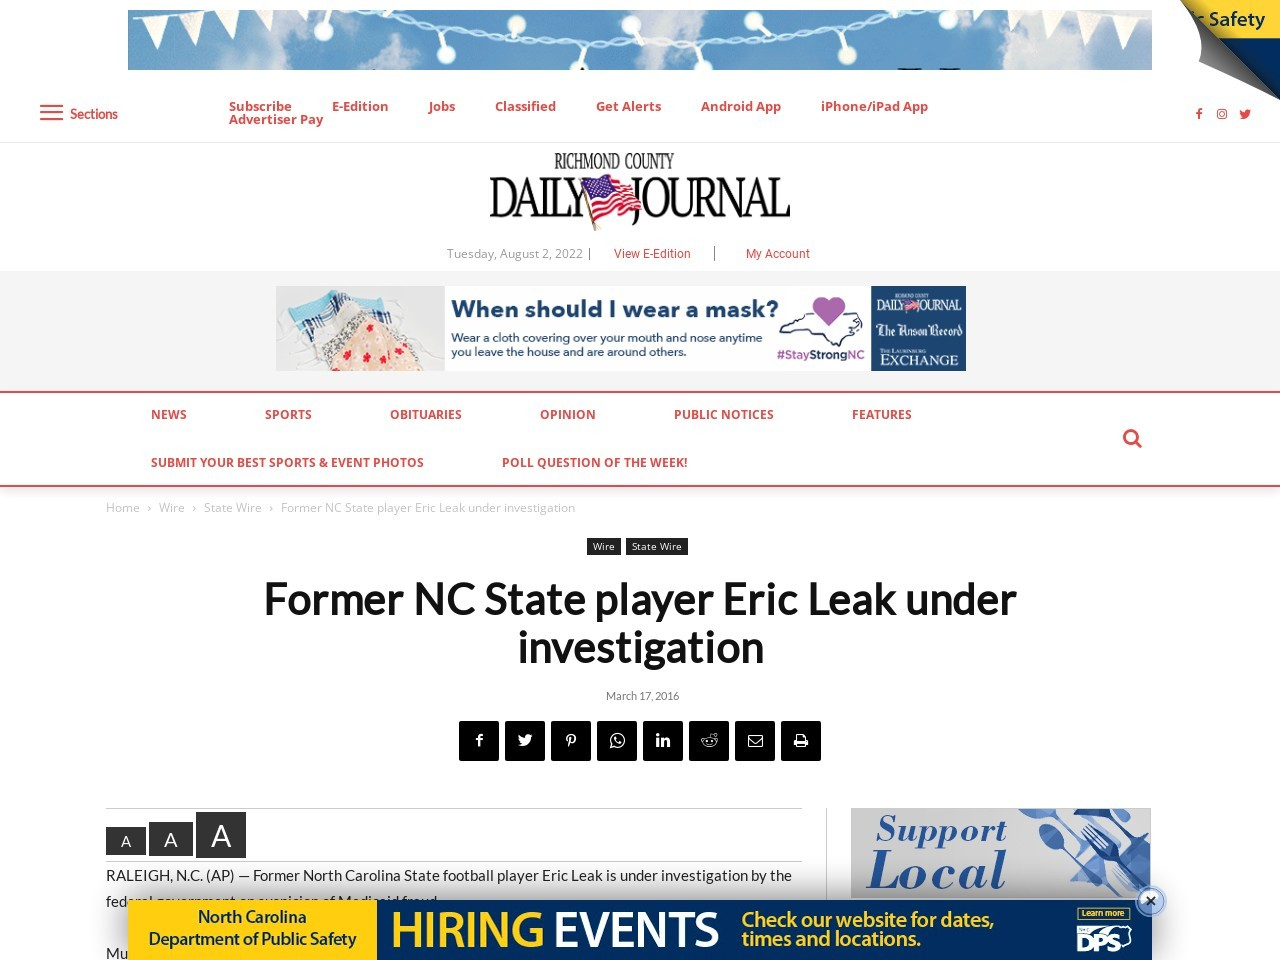 Former NC State player Eric Leak under investigation